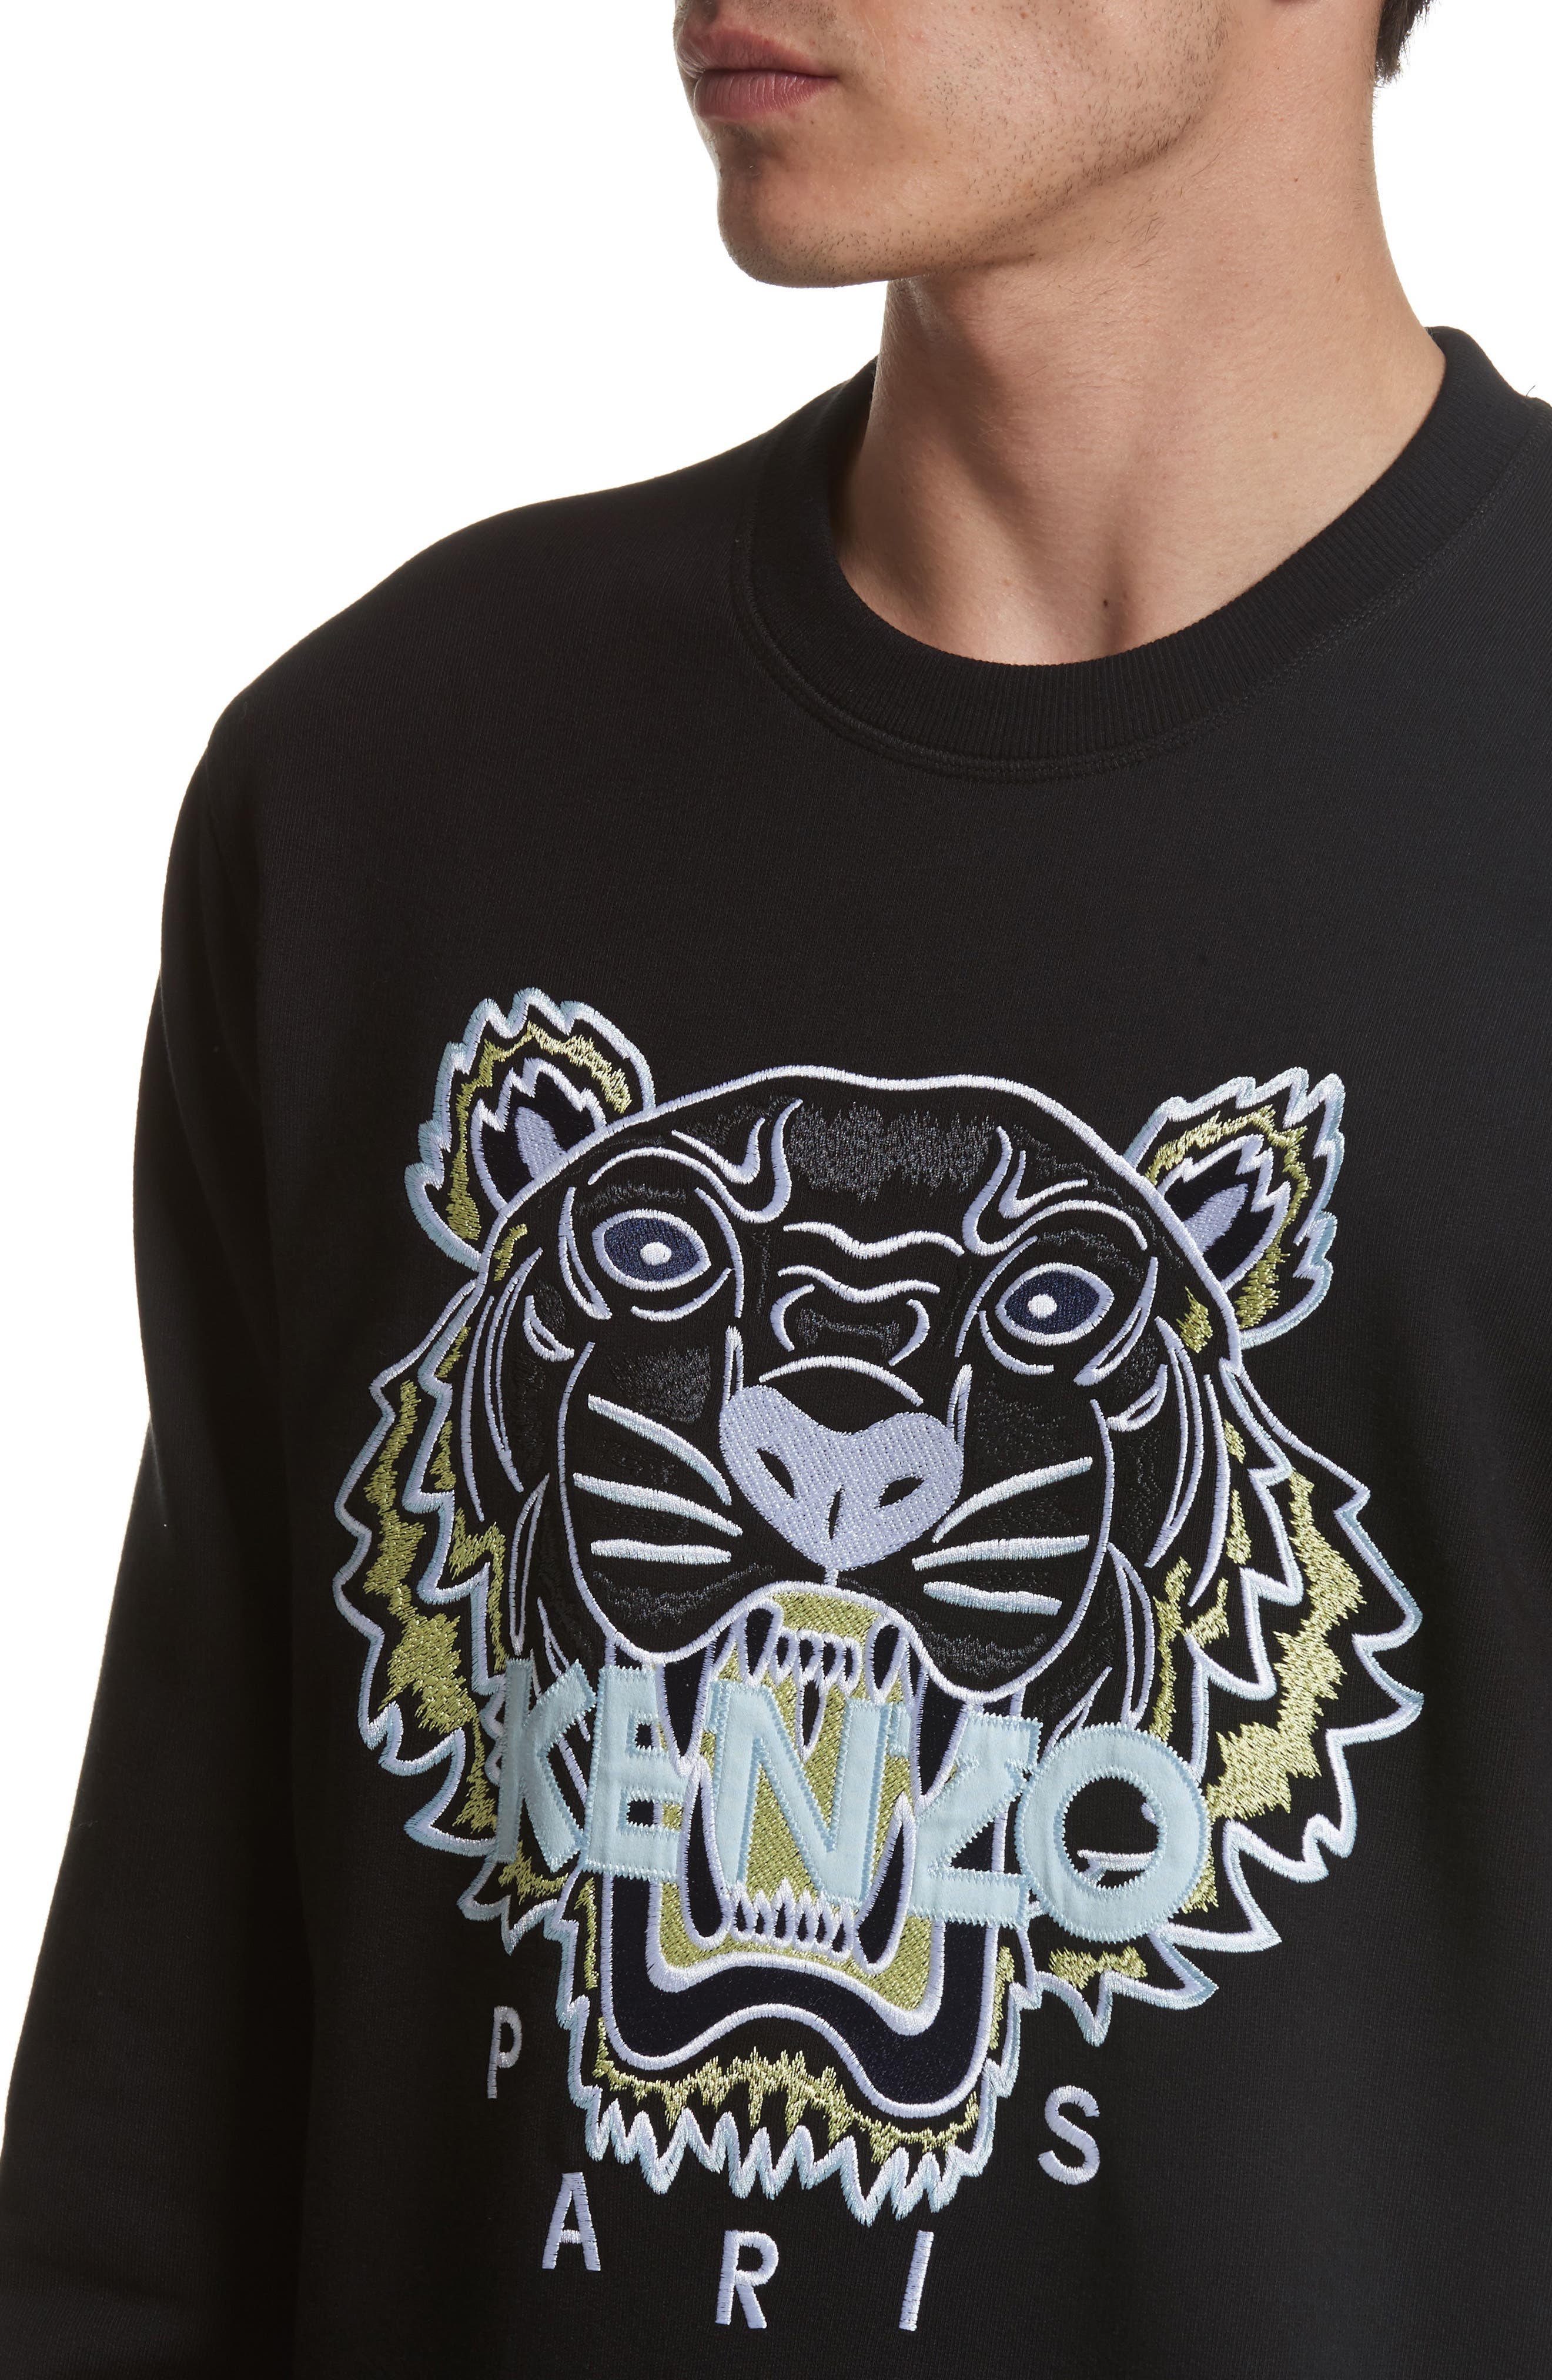 Embroidered Graphic Sweatshirt,                             Alternate thumbnail 4, color,                             001